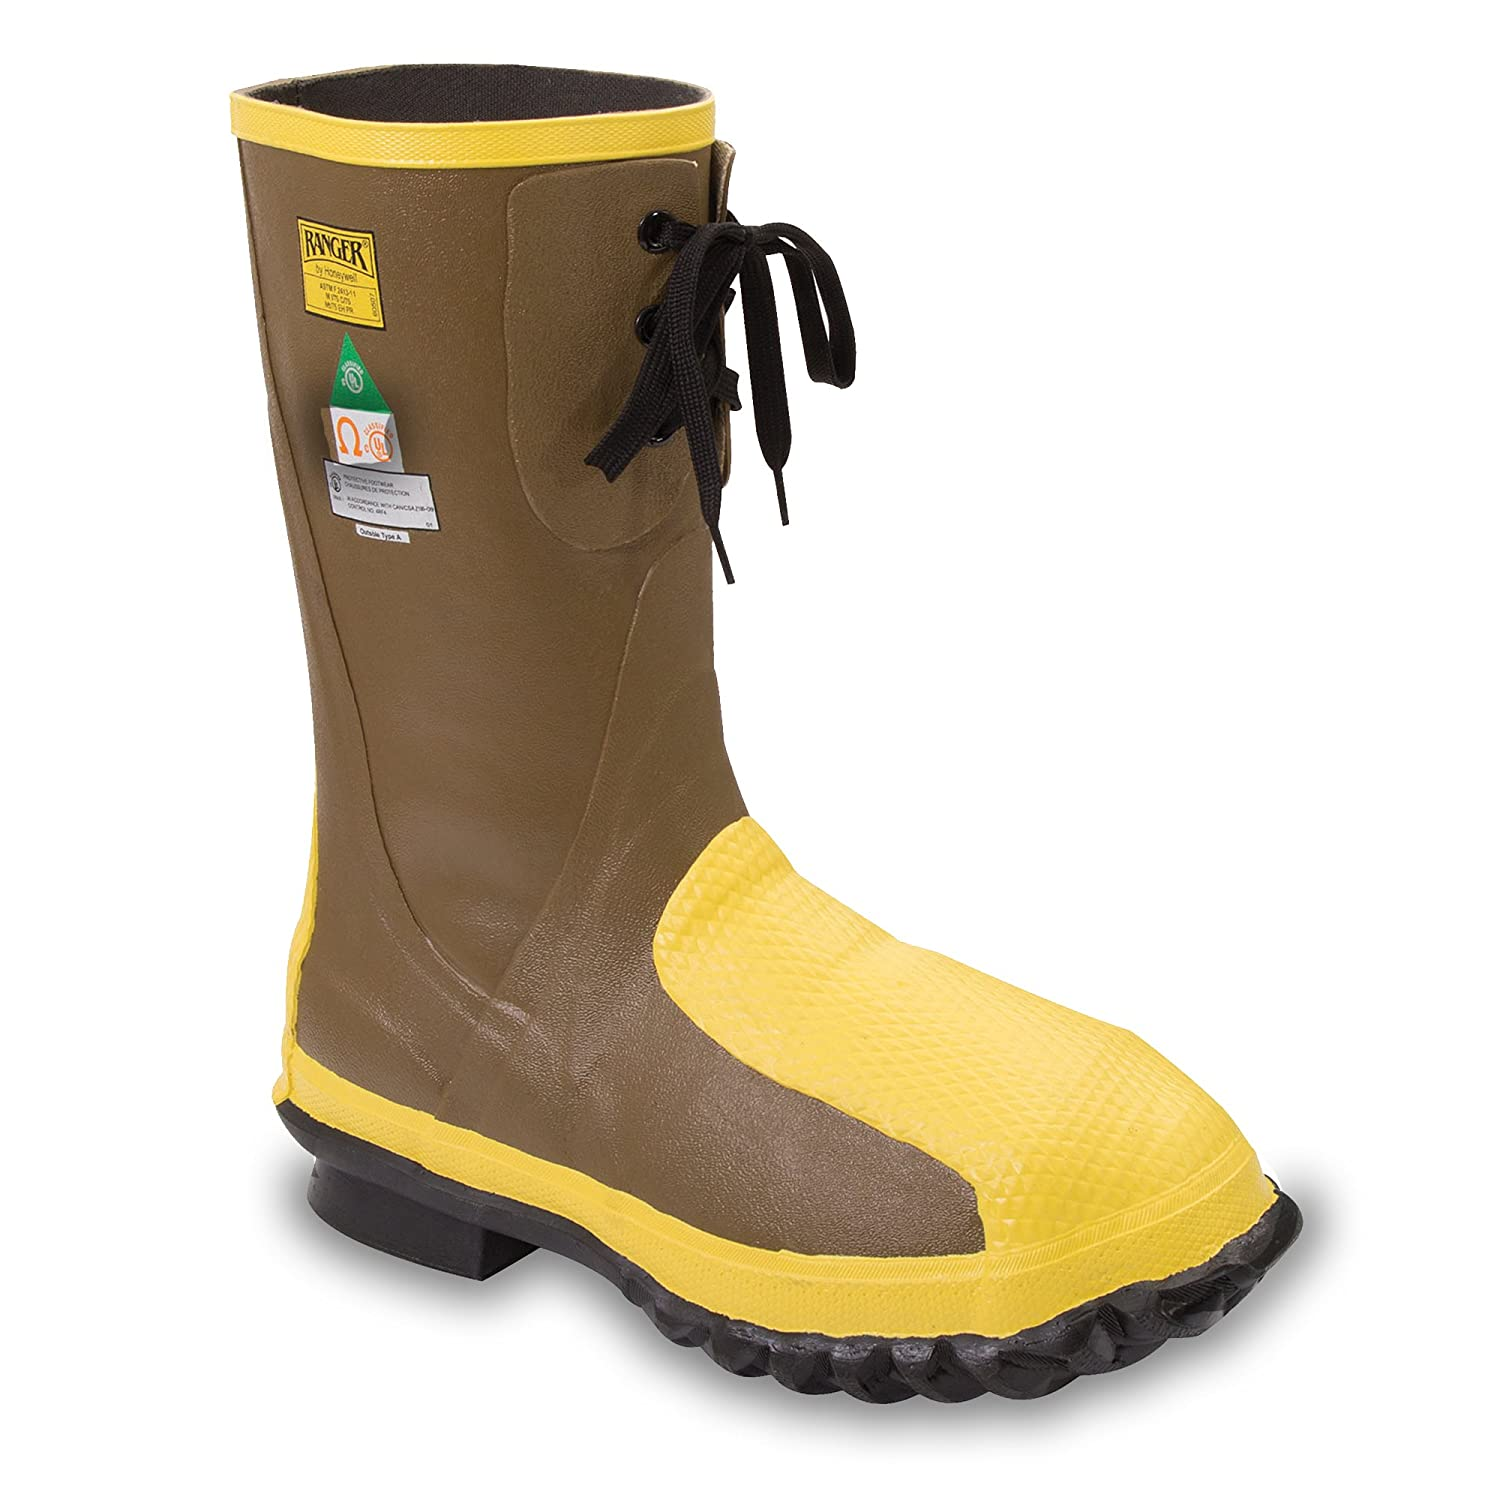 Ranger Flex-Guard Safety Pac 16 Heavy Duty Men's Rubber Metatarsal Boots with Steel Toe and Steel Midsole, Olive/Yellow & Black (2169) Sperian Protection Group 2169-ODM-050